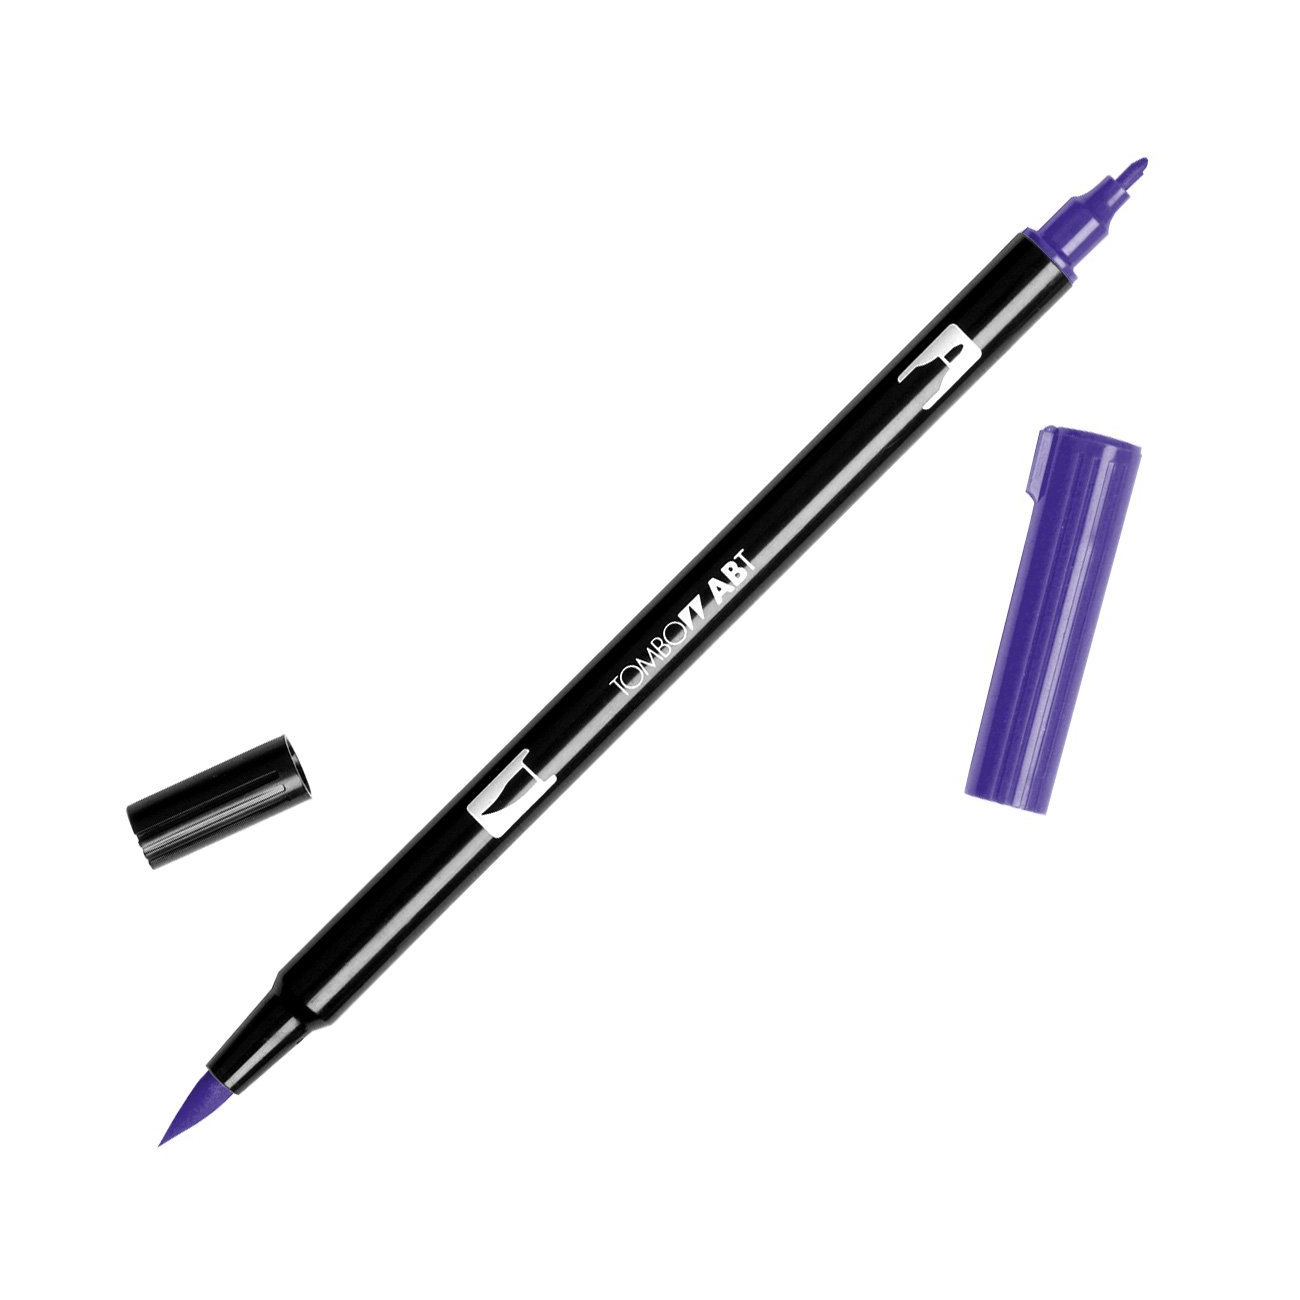 Tombow Dual Brush Pen 606 Violet